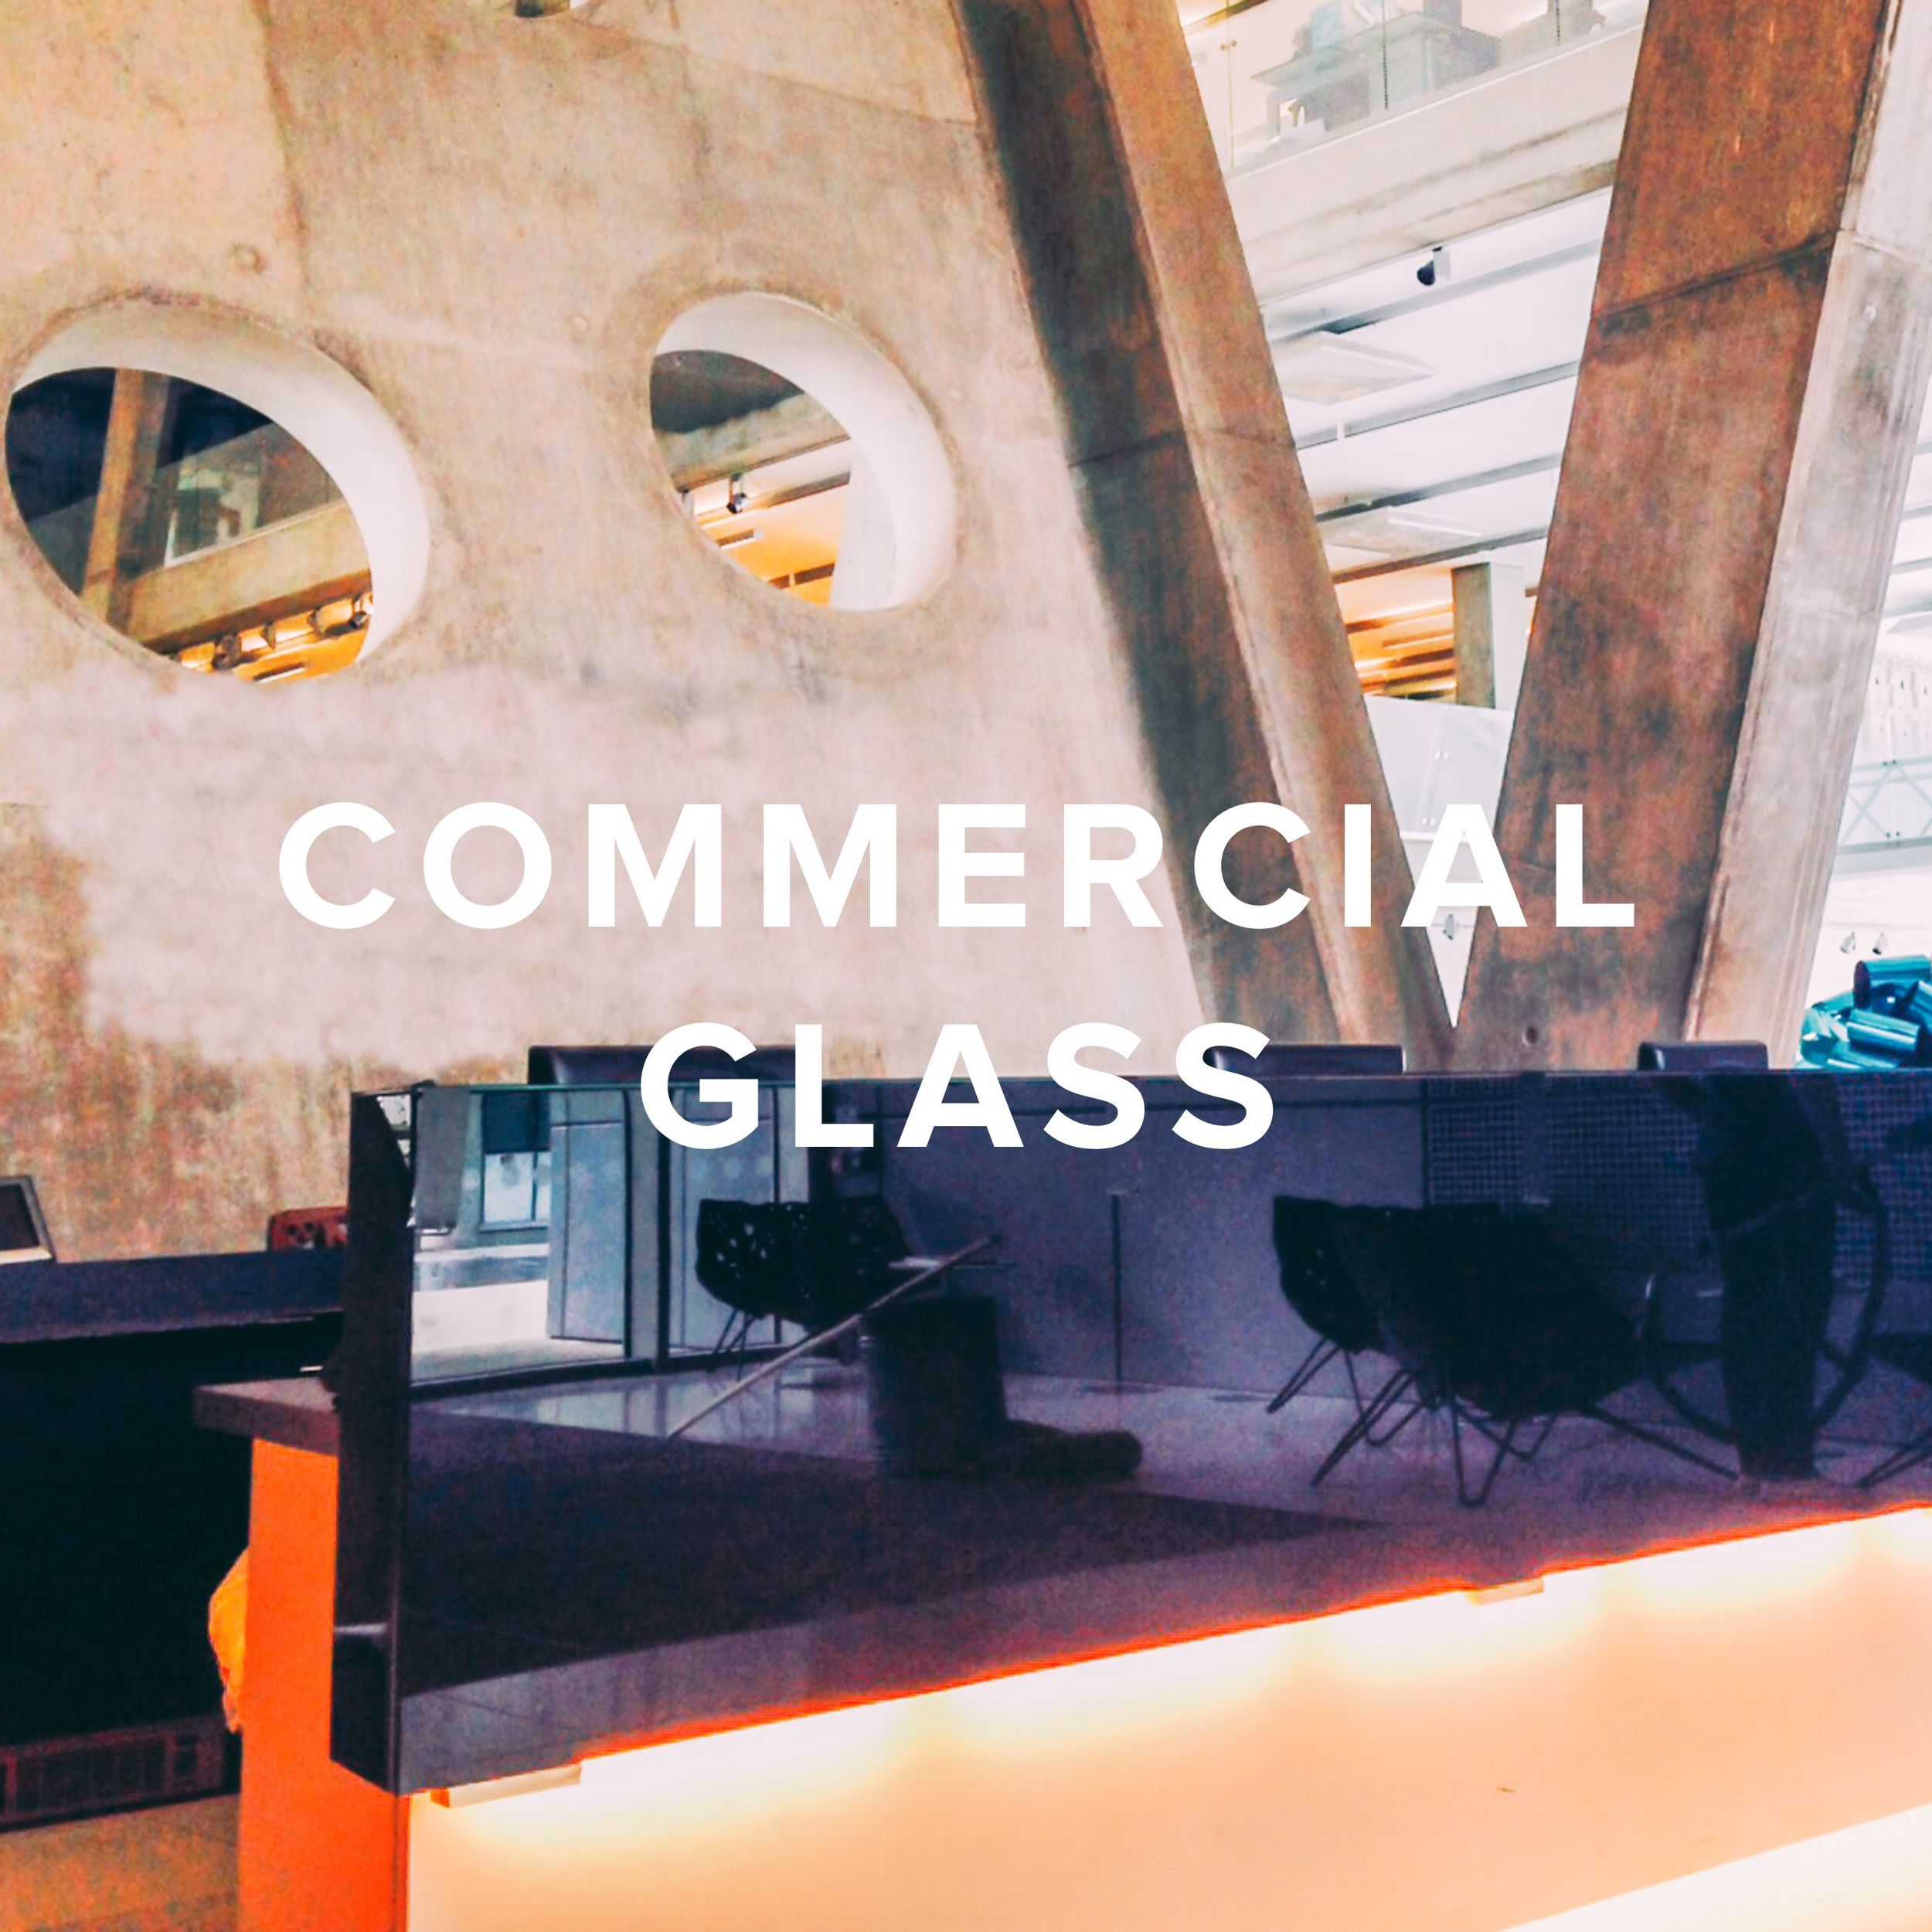 COMMERCIAL GLASS.jpg